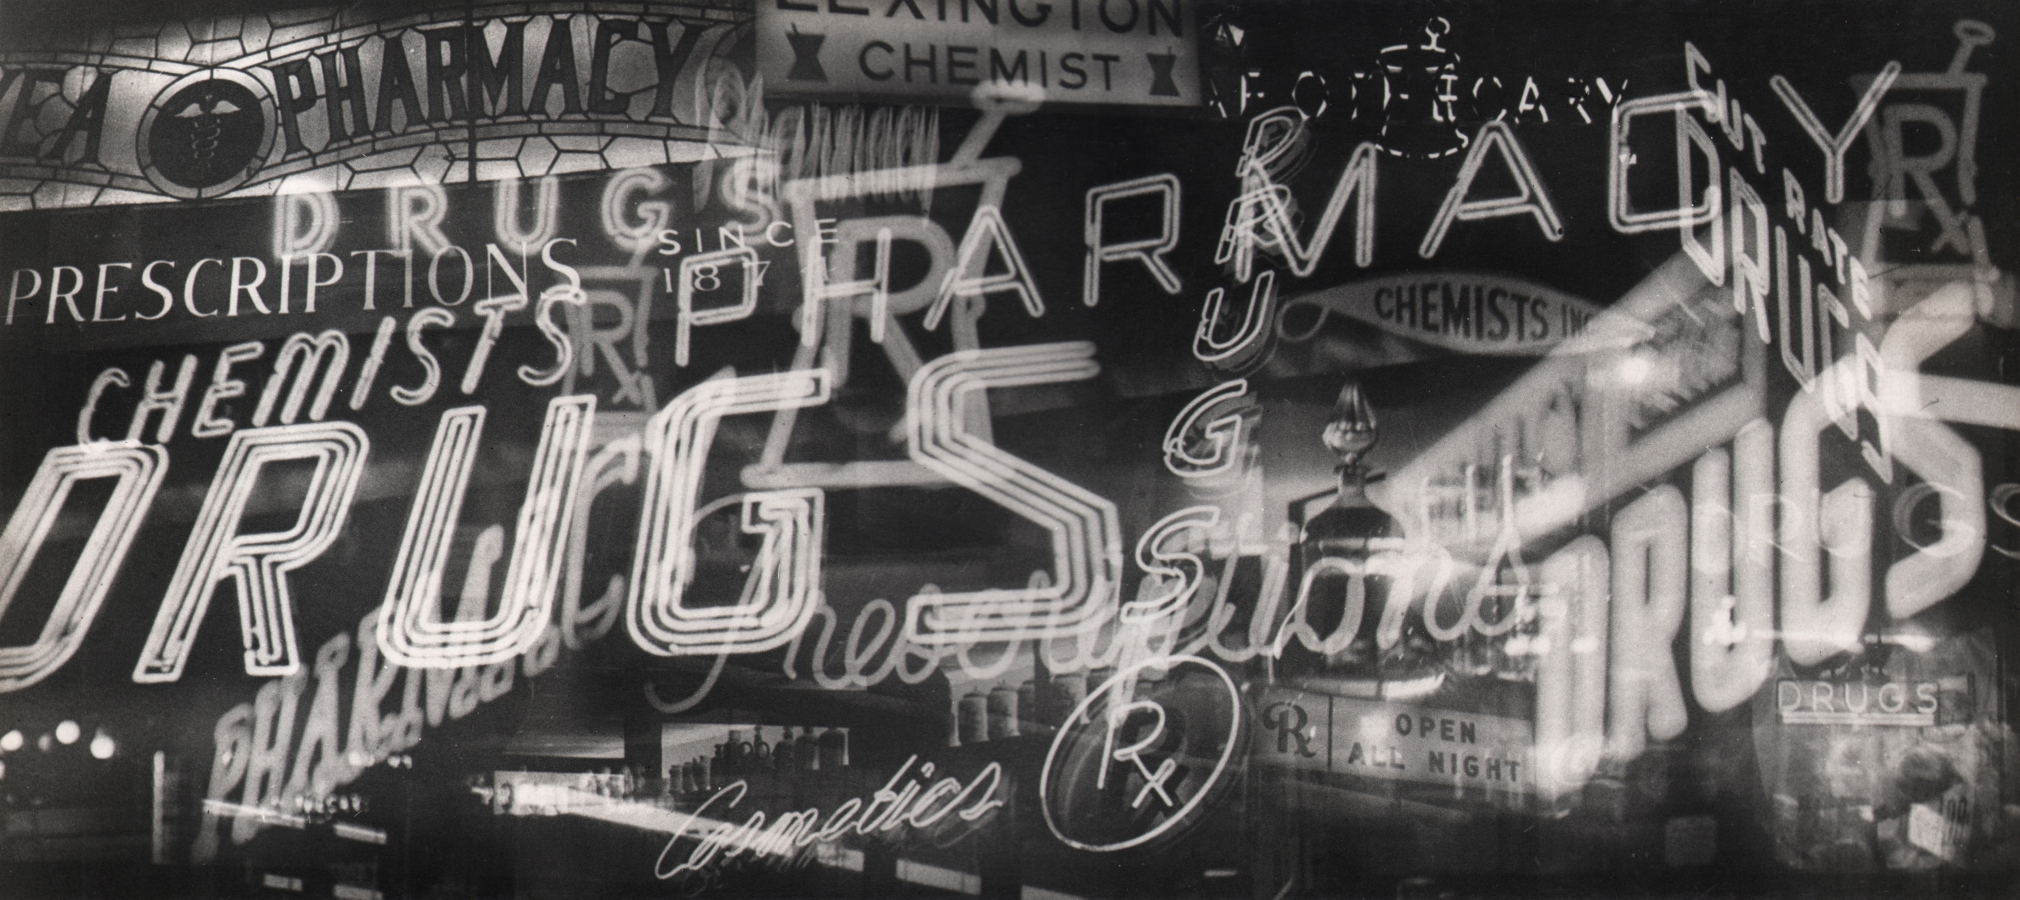 09. David Attie, Untitled (Pharmaceuticals), c. 1958. Multiple-exposure photograph of various neon signs, all pharmacy-related.